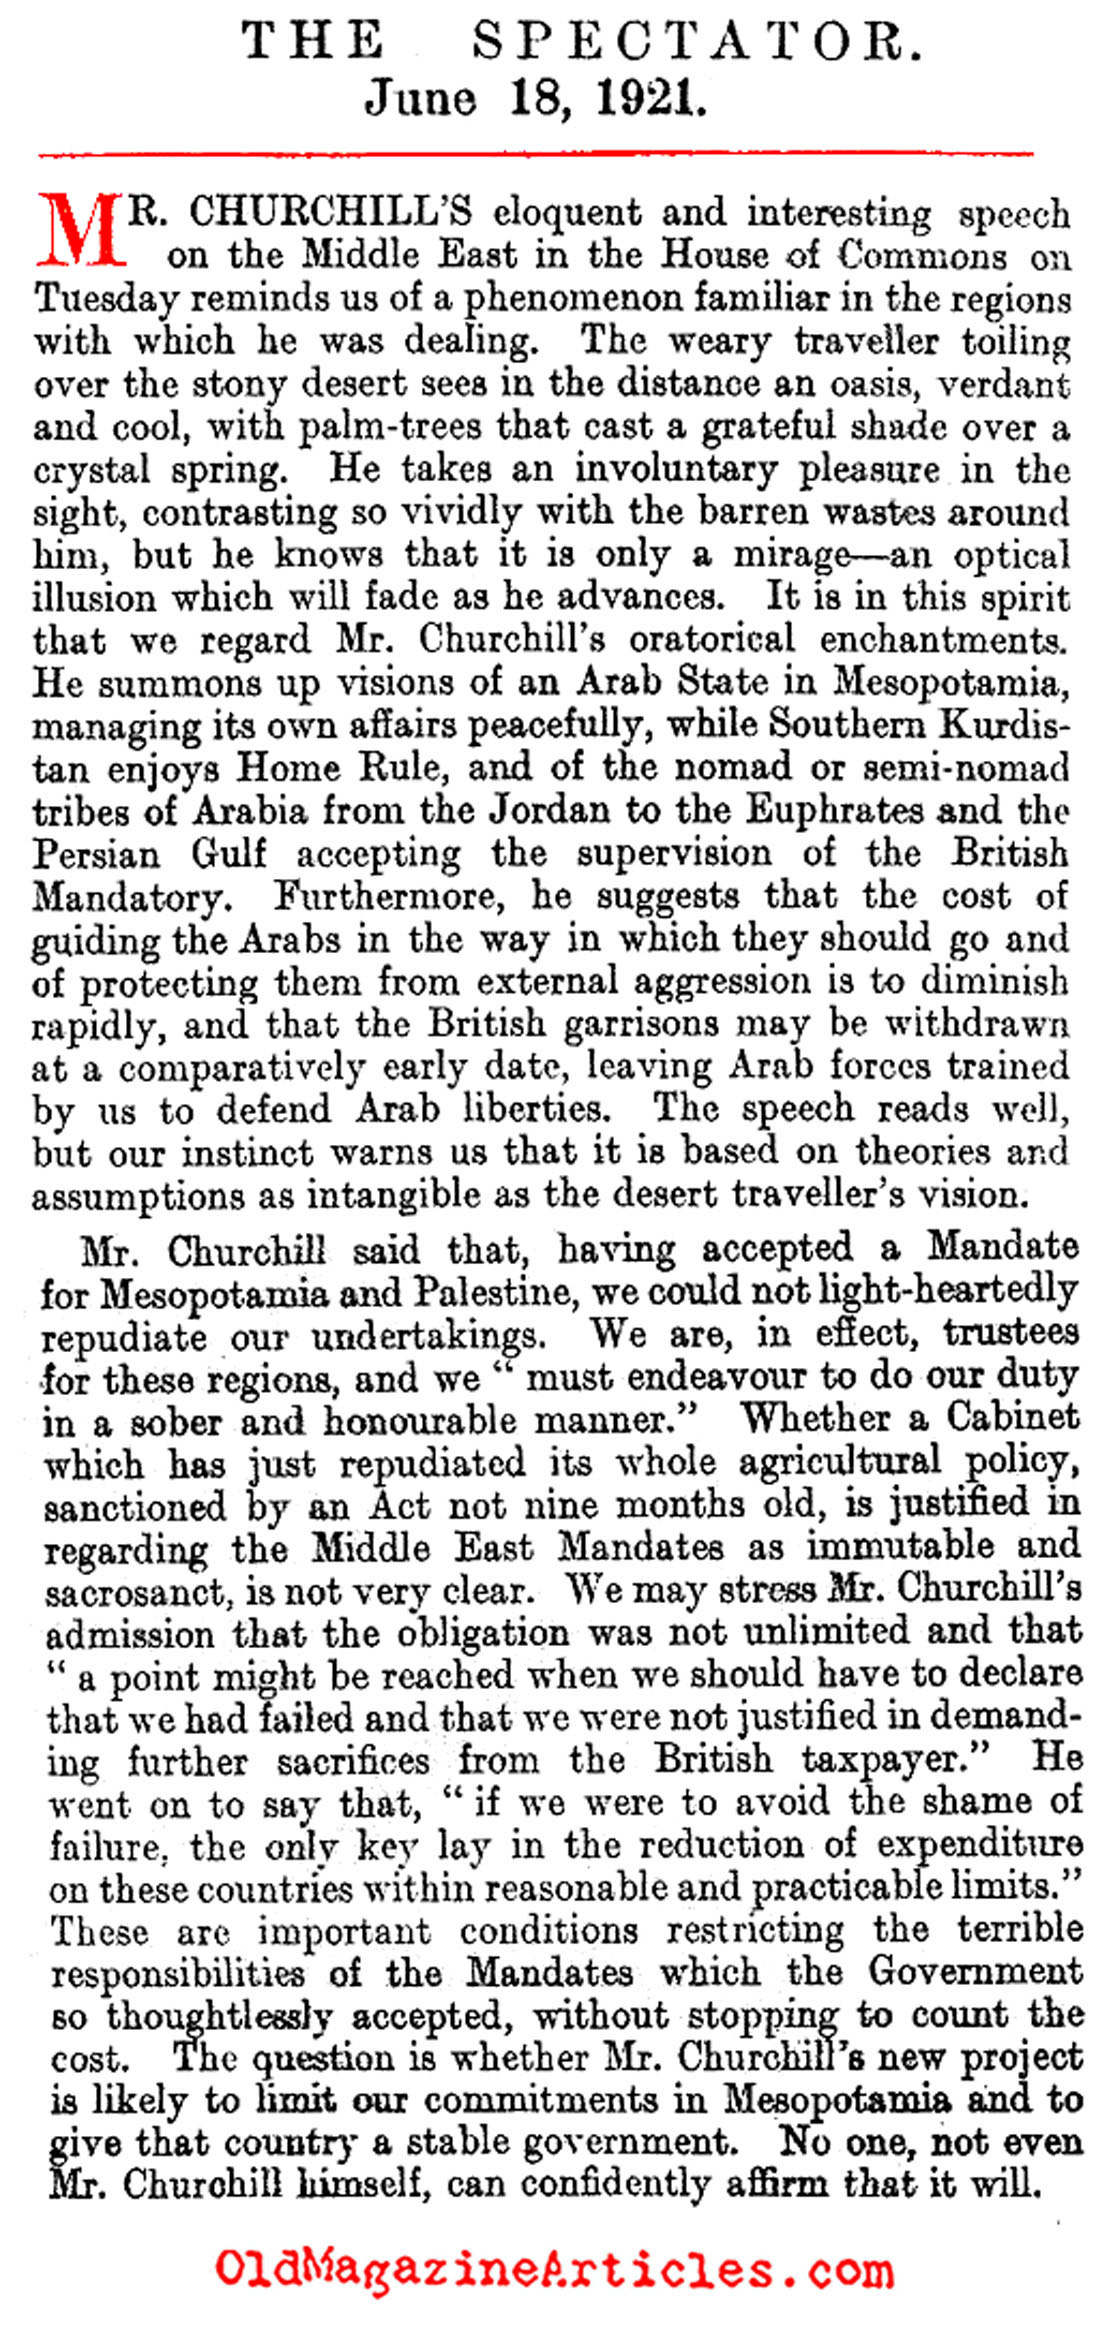 Winston Churchill and the Mesopotamia Occupation   (The Spectator, 1921)